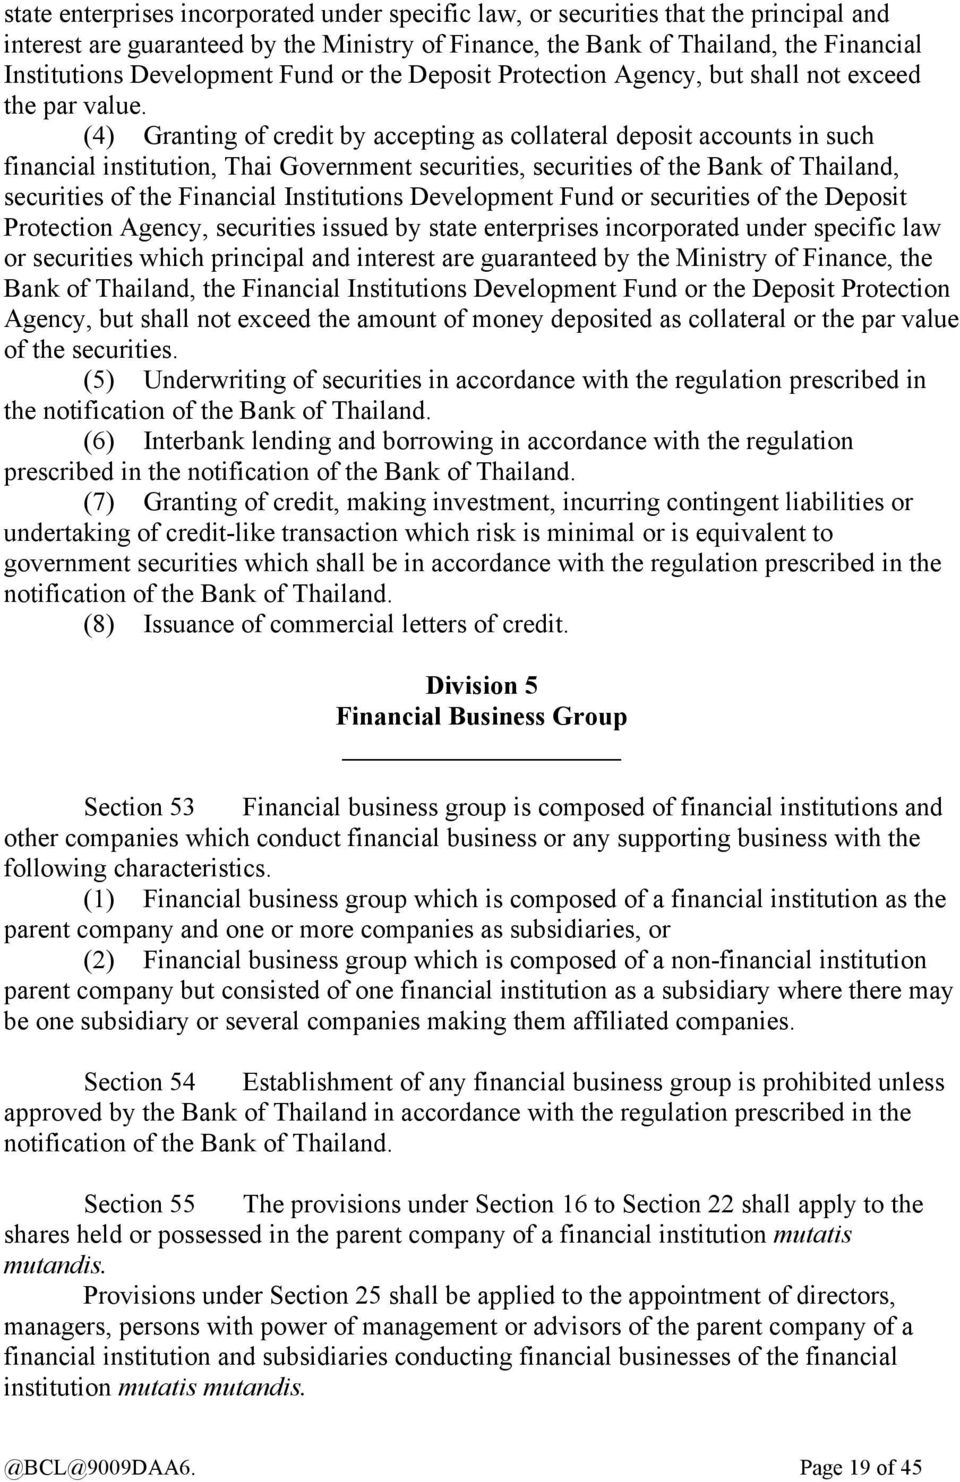 (4) Granting of credit by accepting as collateral deposit accounts in such financial institution, Thai Government securities, securities of the Bank of Thailand, securities of the Financial